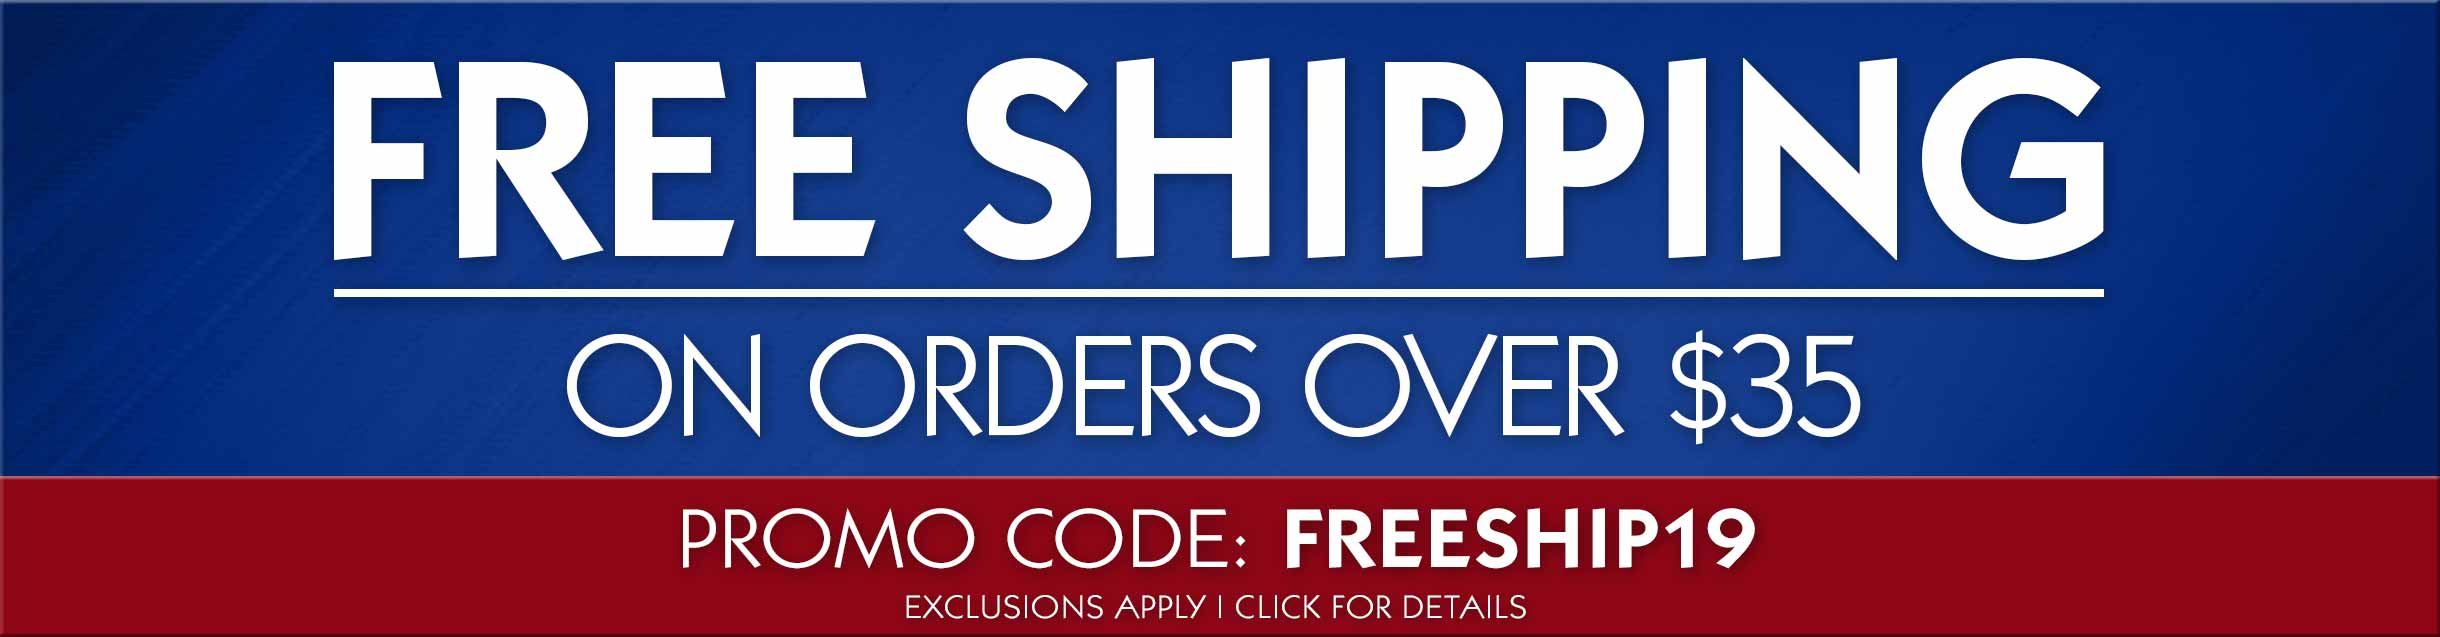 Free Shipping on Orders Over $35! Exclusions Apply. Use Code: FREESHIP19